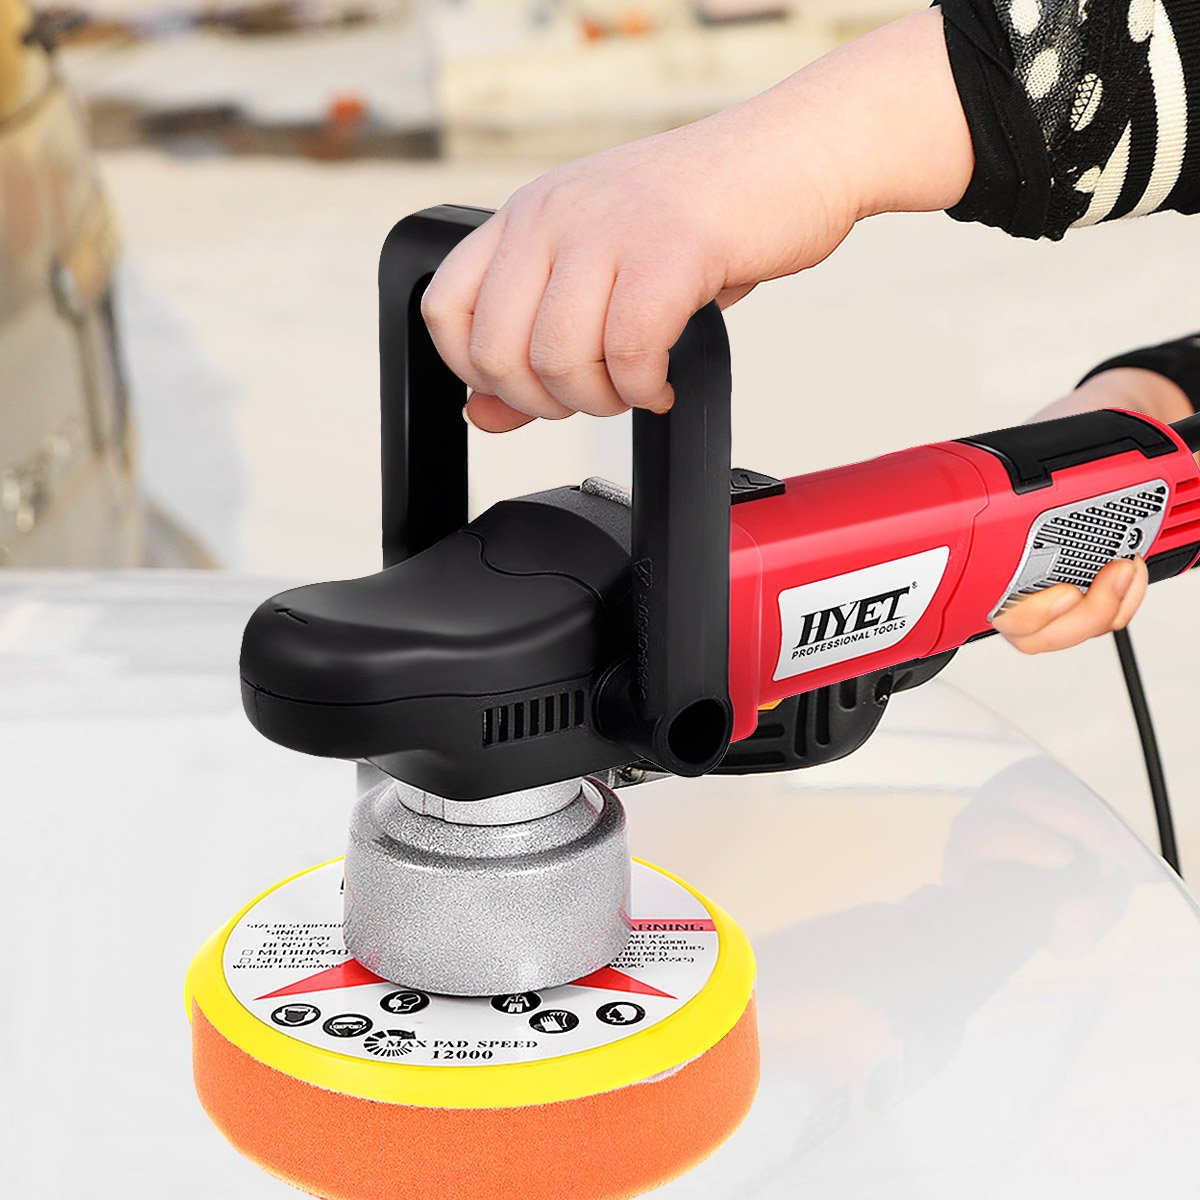 Goplus orbital sander featured image 4